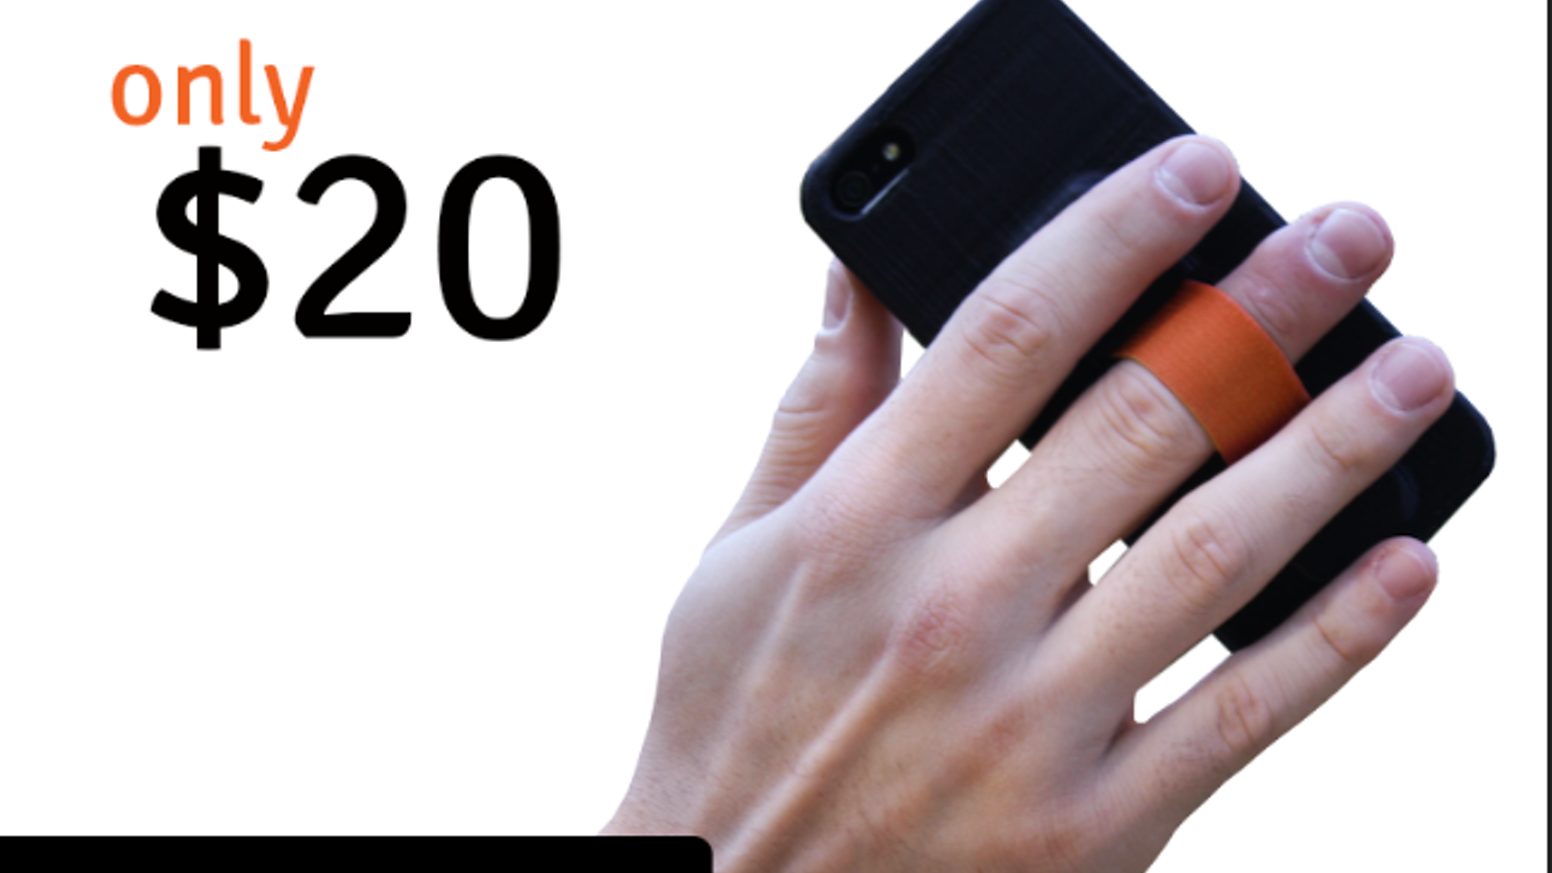 Neverdrop™ keeps your phone in your hand, where it belongs.